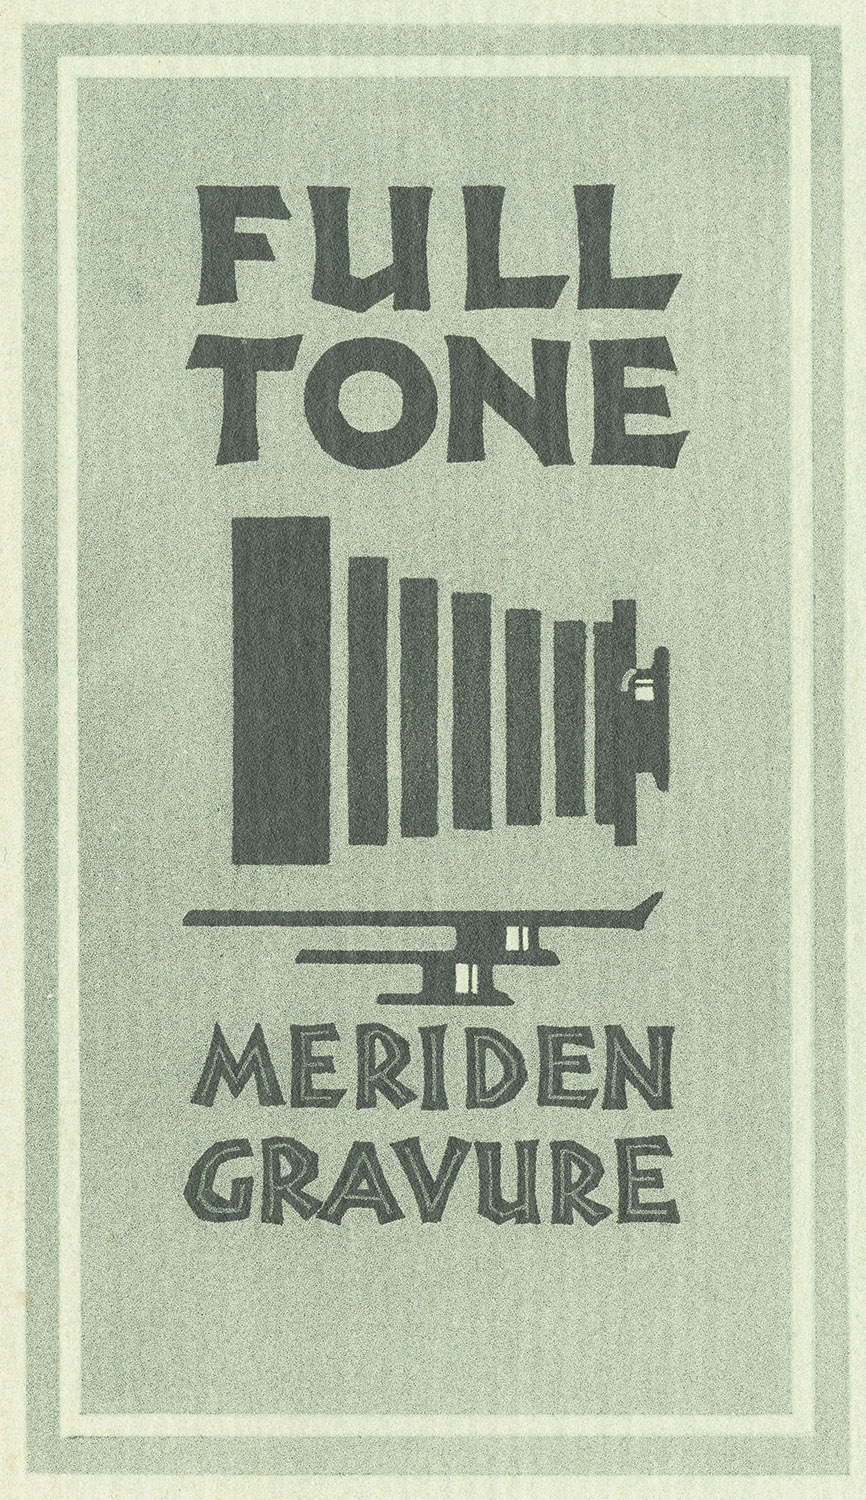 Logo used by the Meriden Gravure Company in the 1930s.